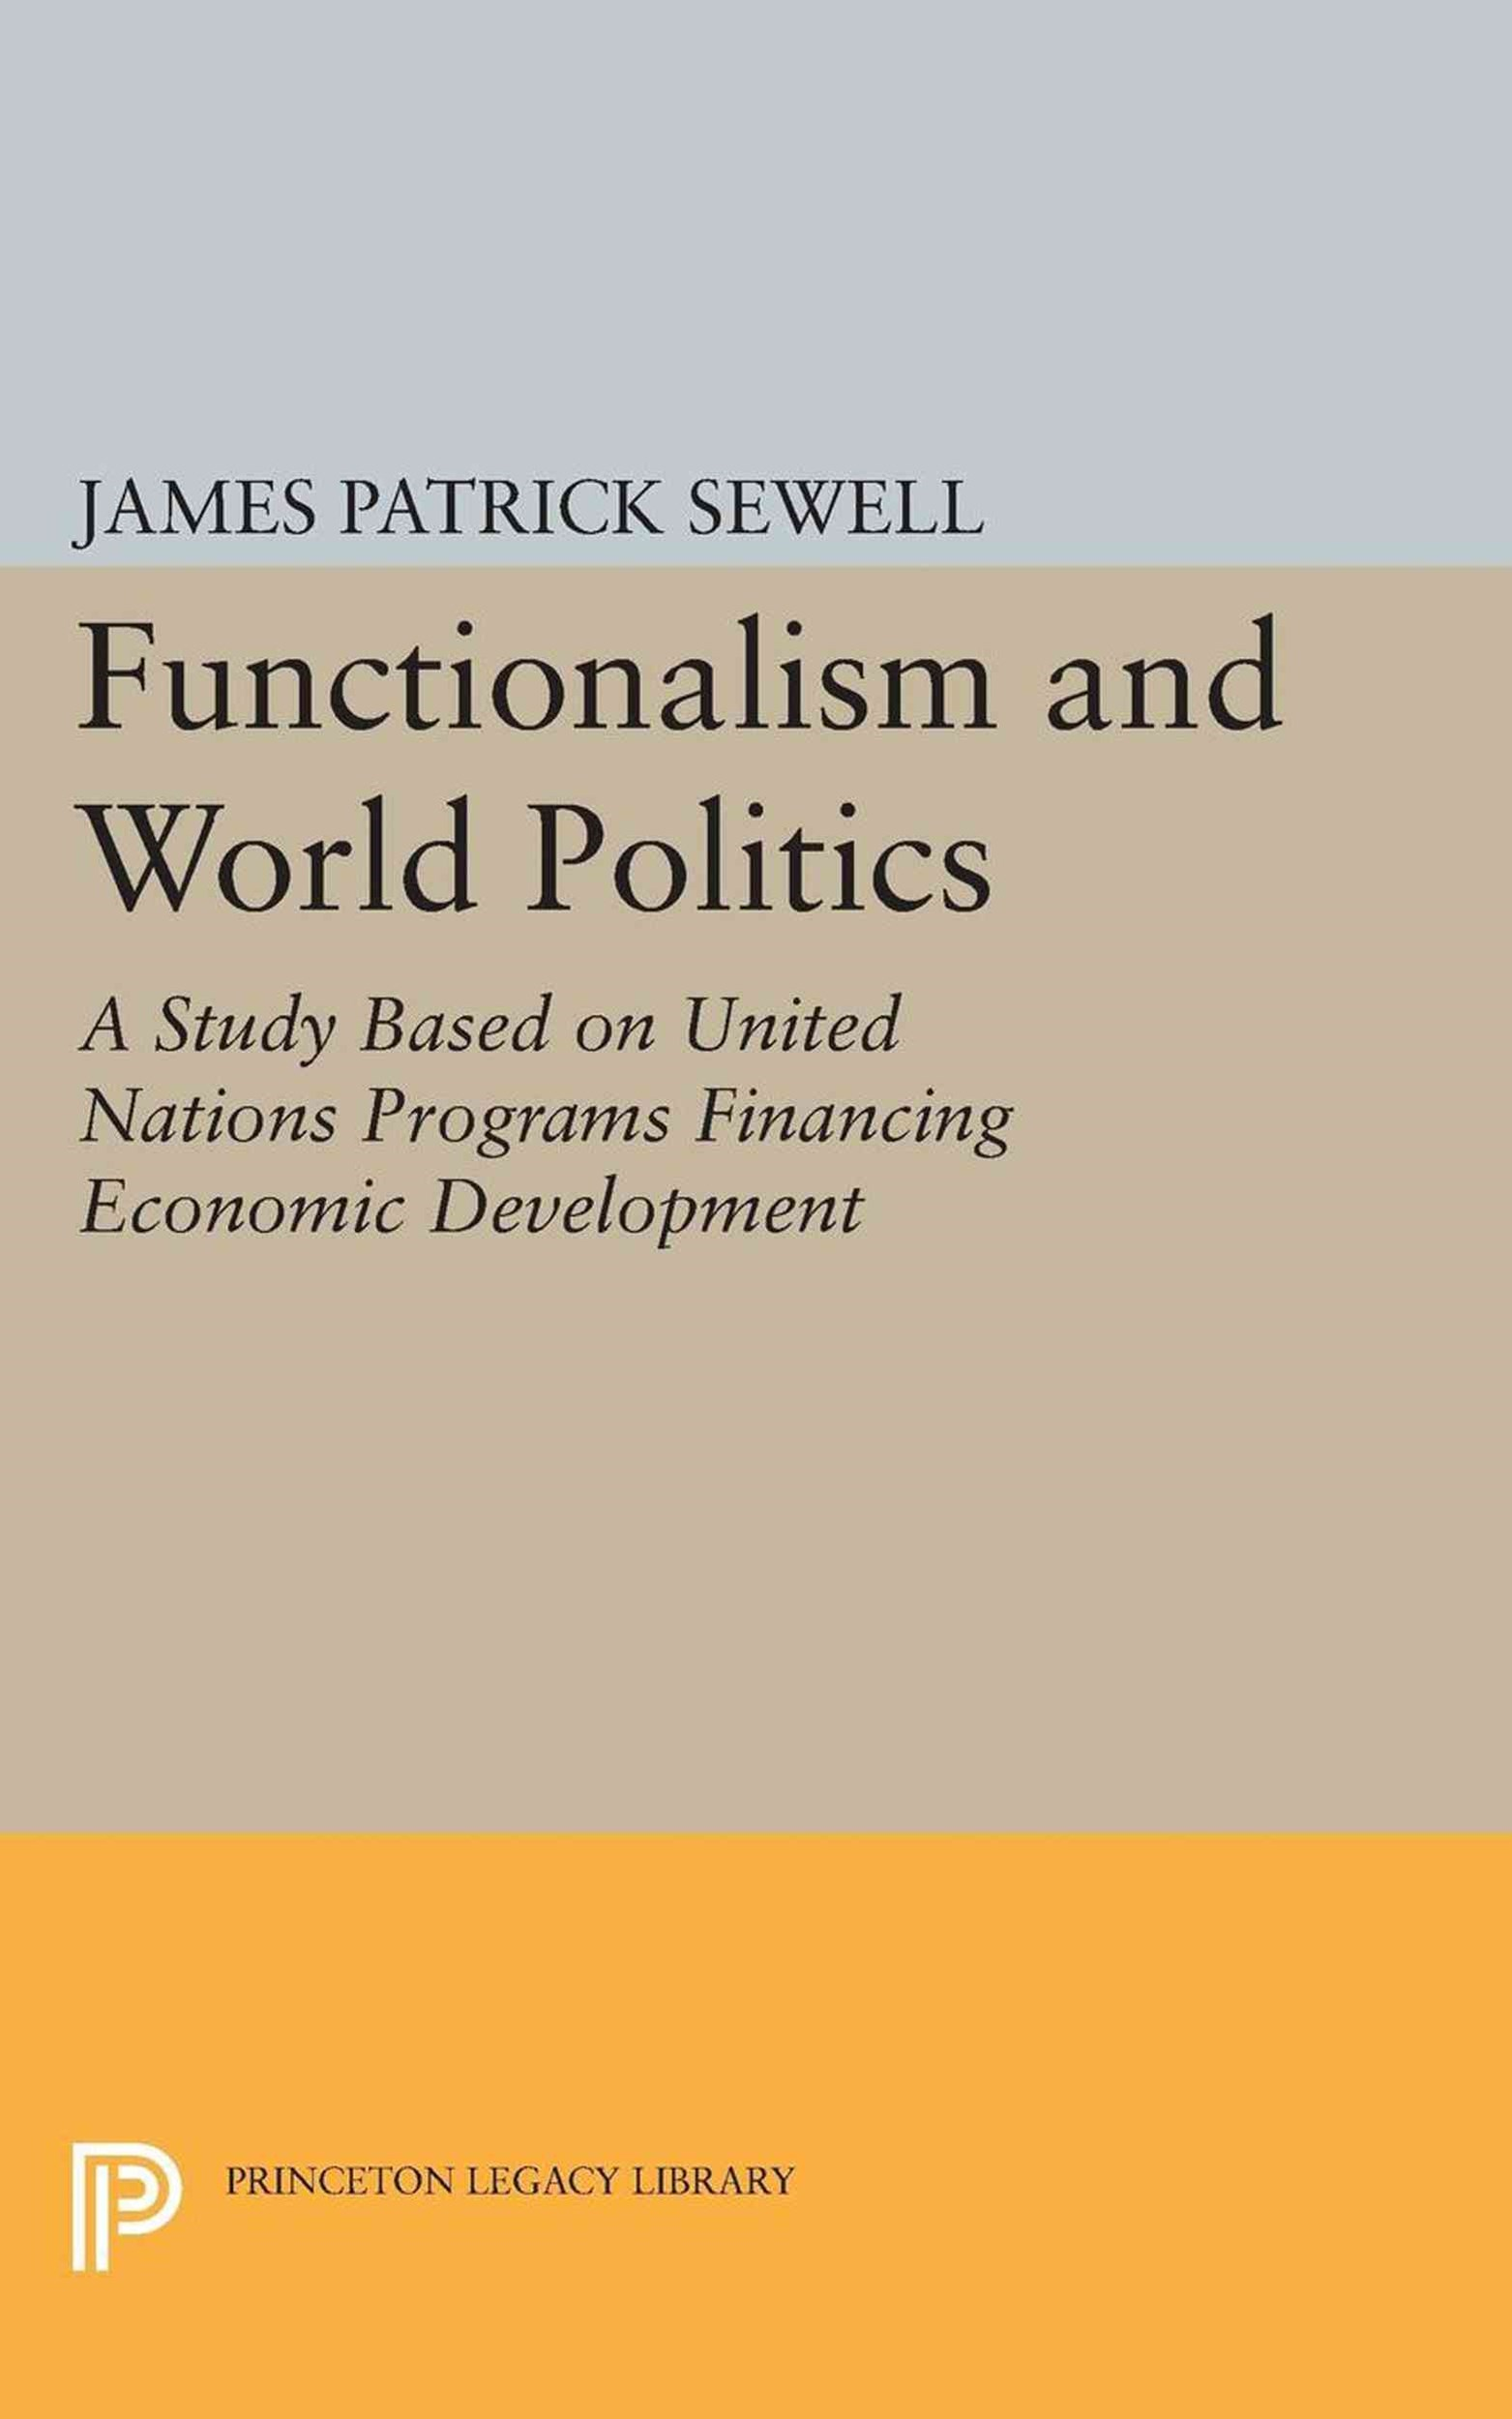 Functionalism and World Politics